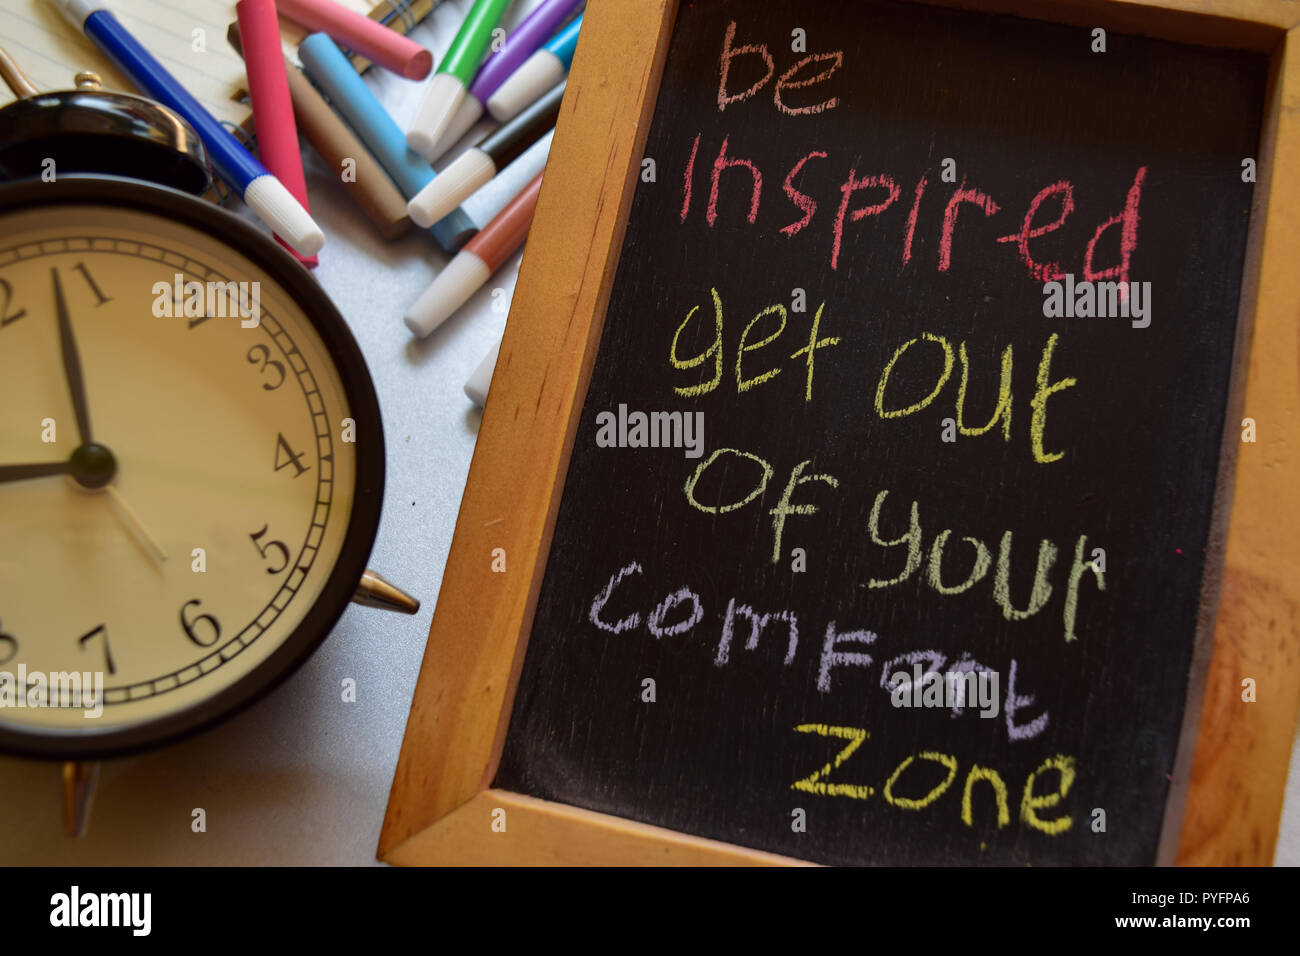 Be inspired get out of your comfort zone on phrase colorful handwritten on chalkboard, alarm clock with motivation and education concepts Stock Photo